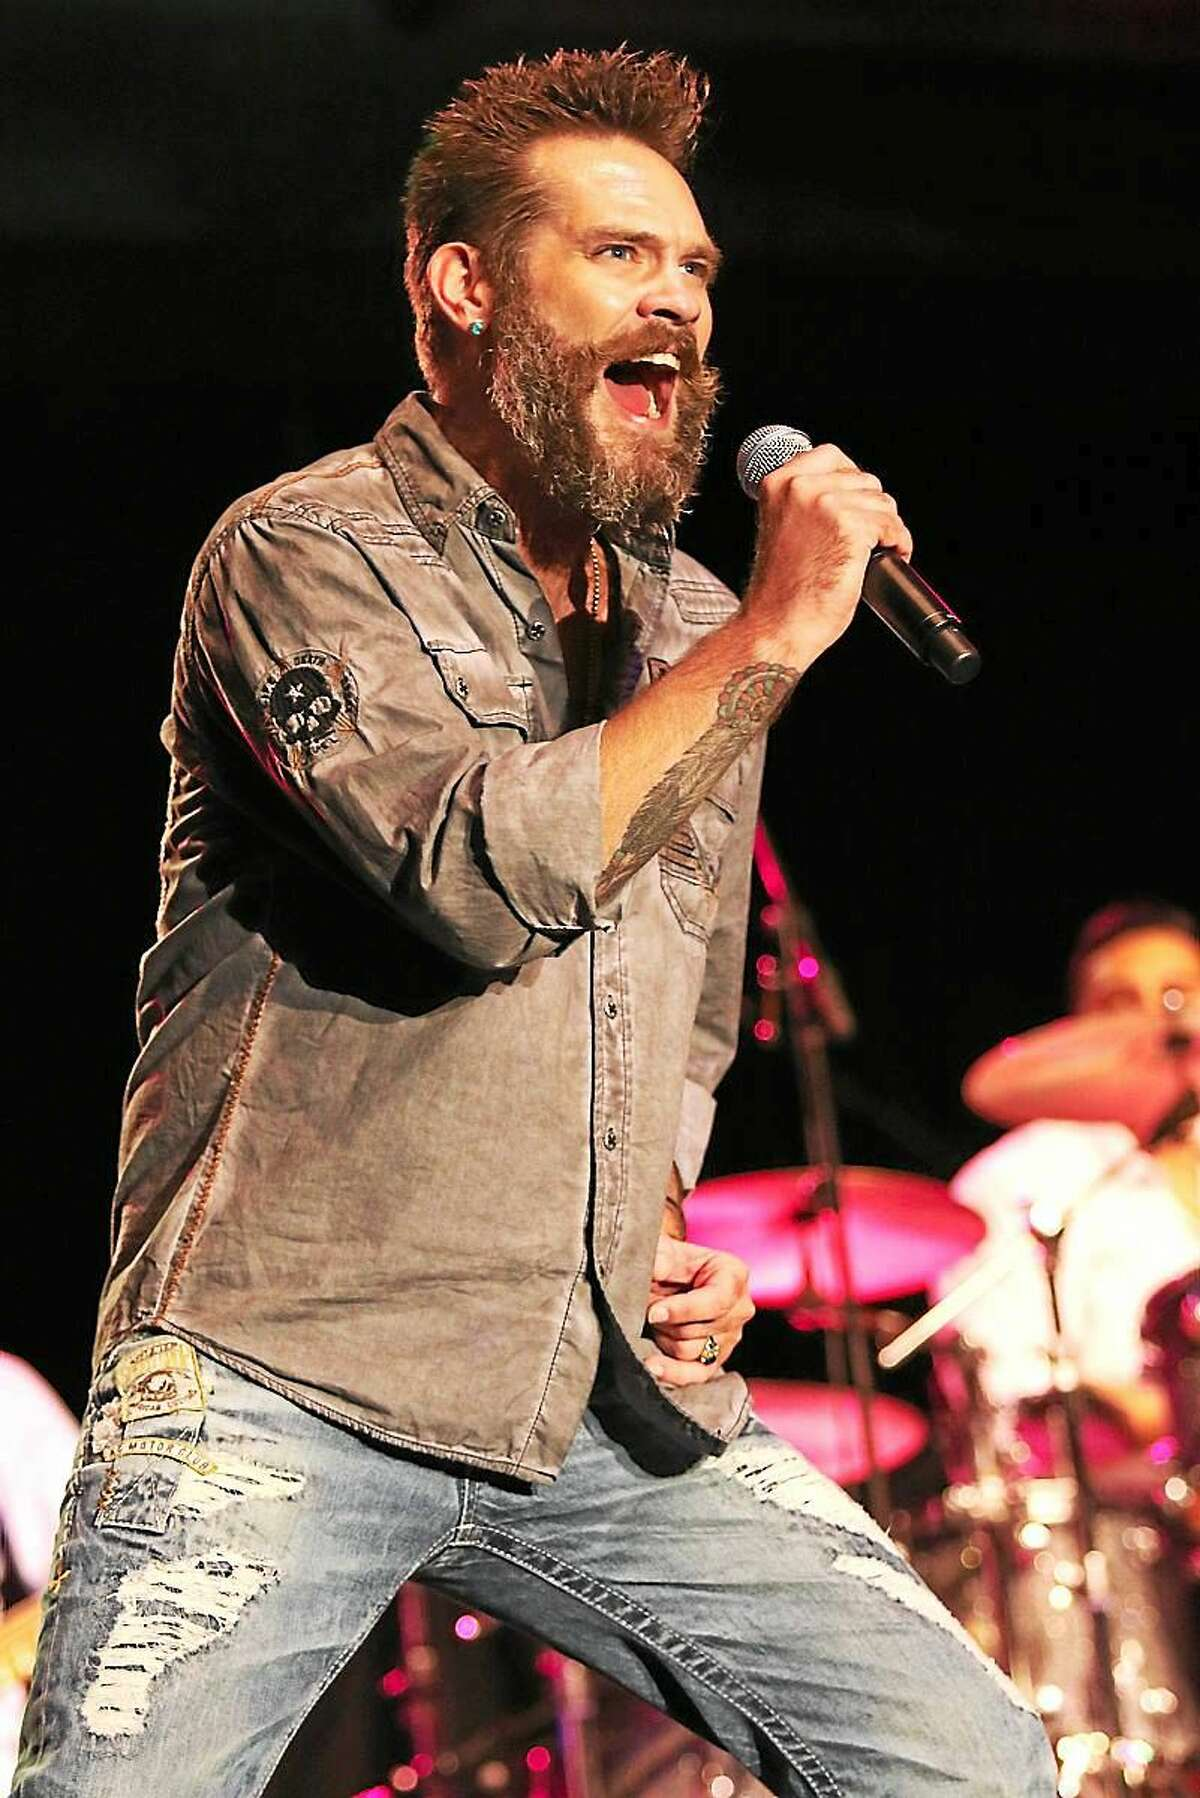 Singer Bo Bice is shown performing on stage along with Blood, Sweat & Tears during the band's concert at the Connecticut Convention Center in Hartford on July 24th. Also included in the double bill show was Jefferson Starship.